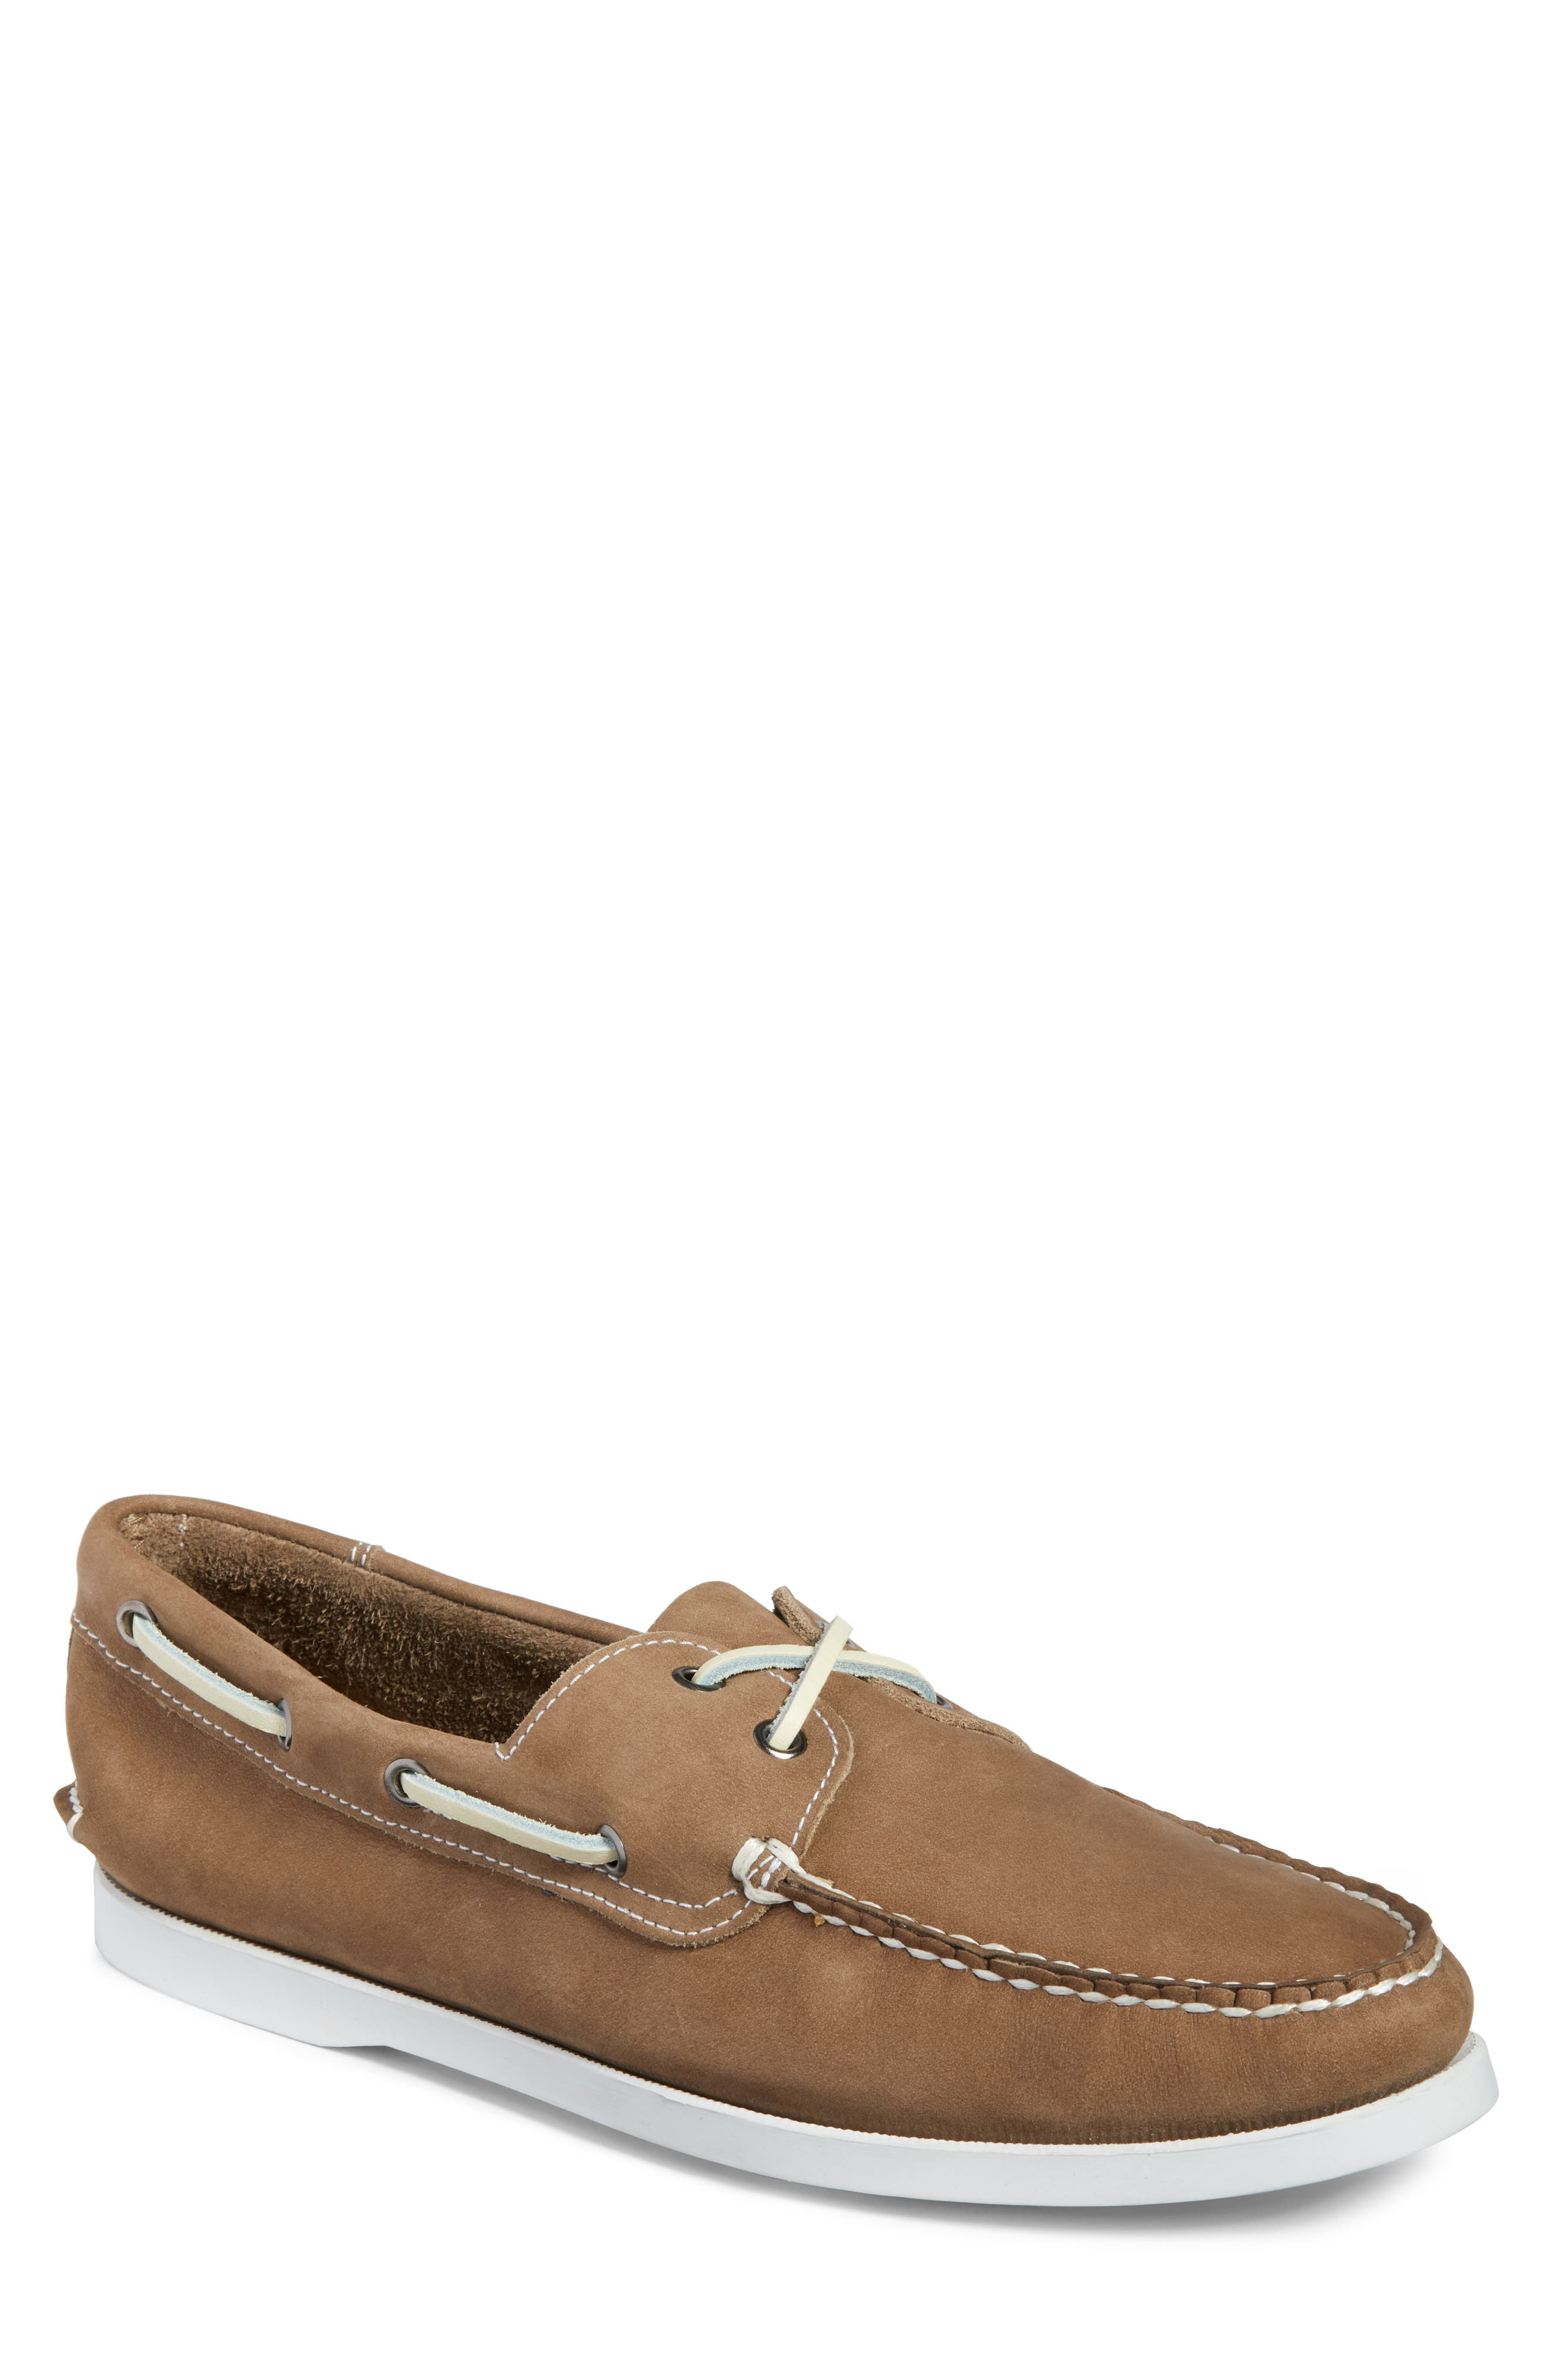 Pacific Boat Shoe,                         Main,                         color, GREY NUBUCK